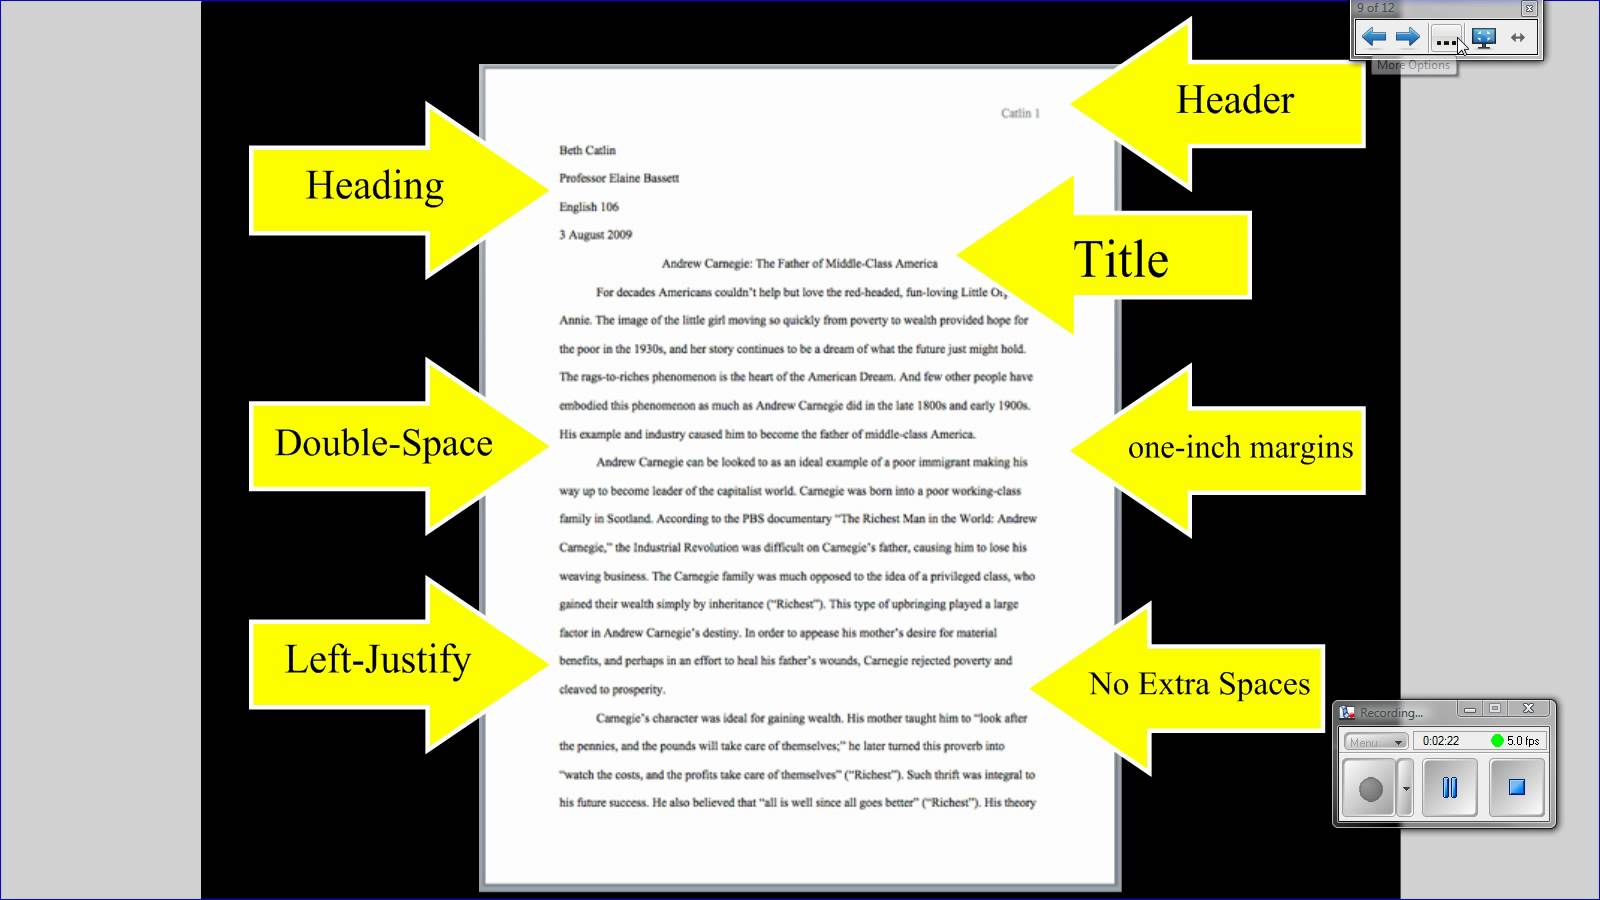 college research papers format Apa research paper format apa (american psychological association) research paper format is often used in papers related to psychology and social sciences in this citation, there is a general format in referencing through endnotes/footnotes, in-text, and reference pages.